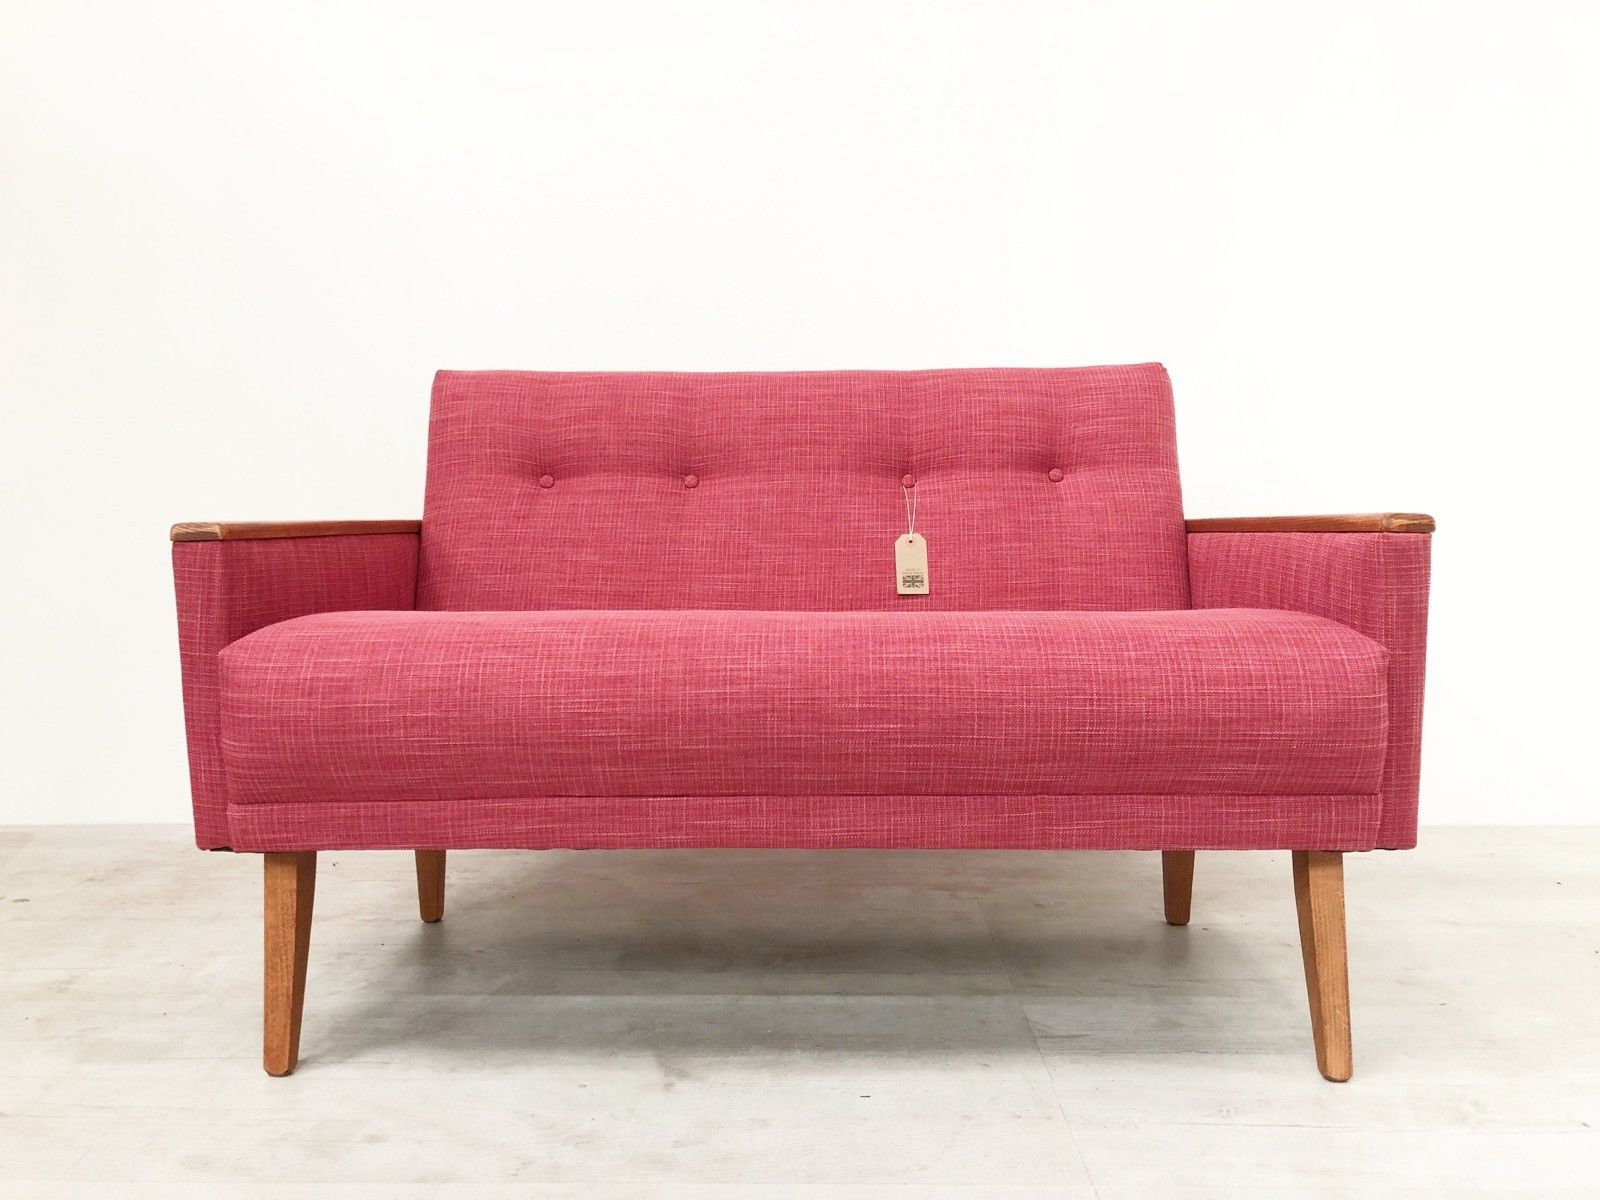 Sofa 60s Vintage Inspired Danish Mid Century 50s 60s 2 Seat Cocktail Sofa Settee In Raspberry